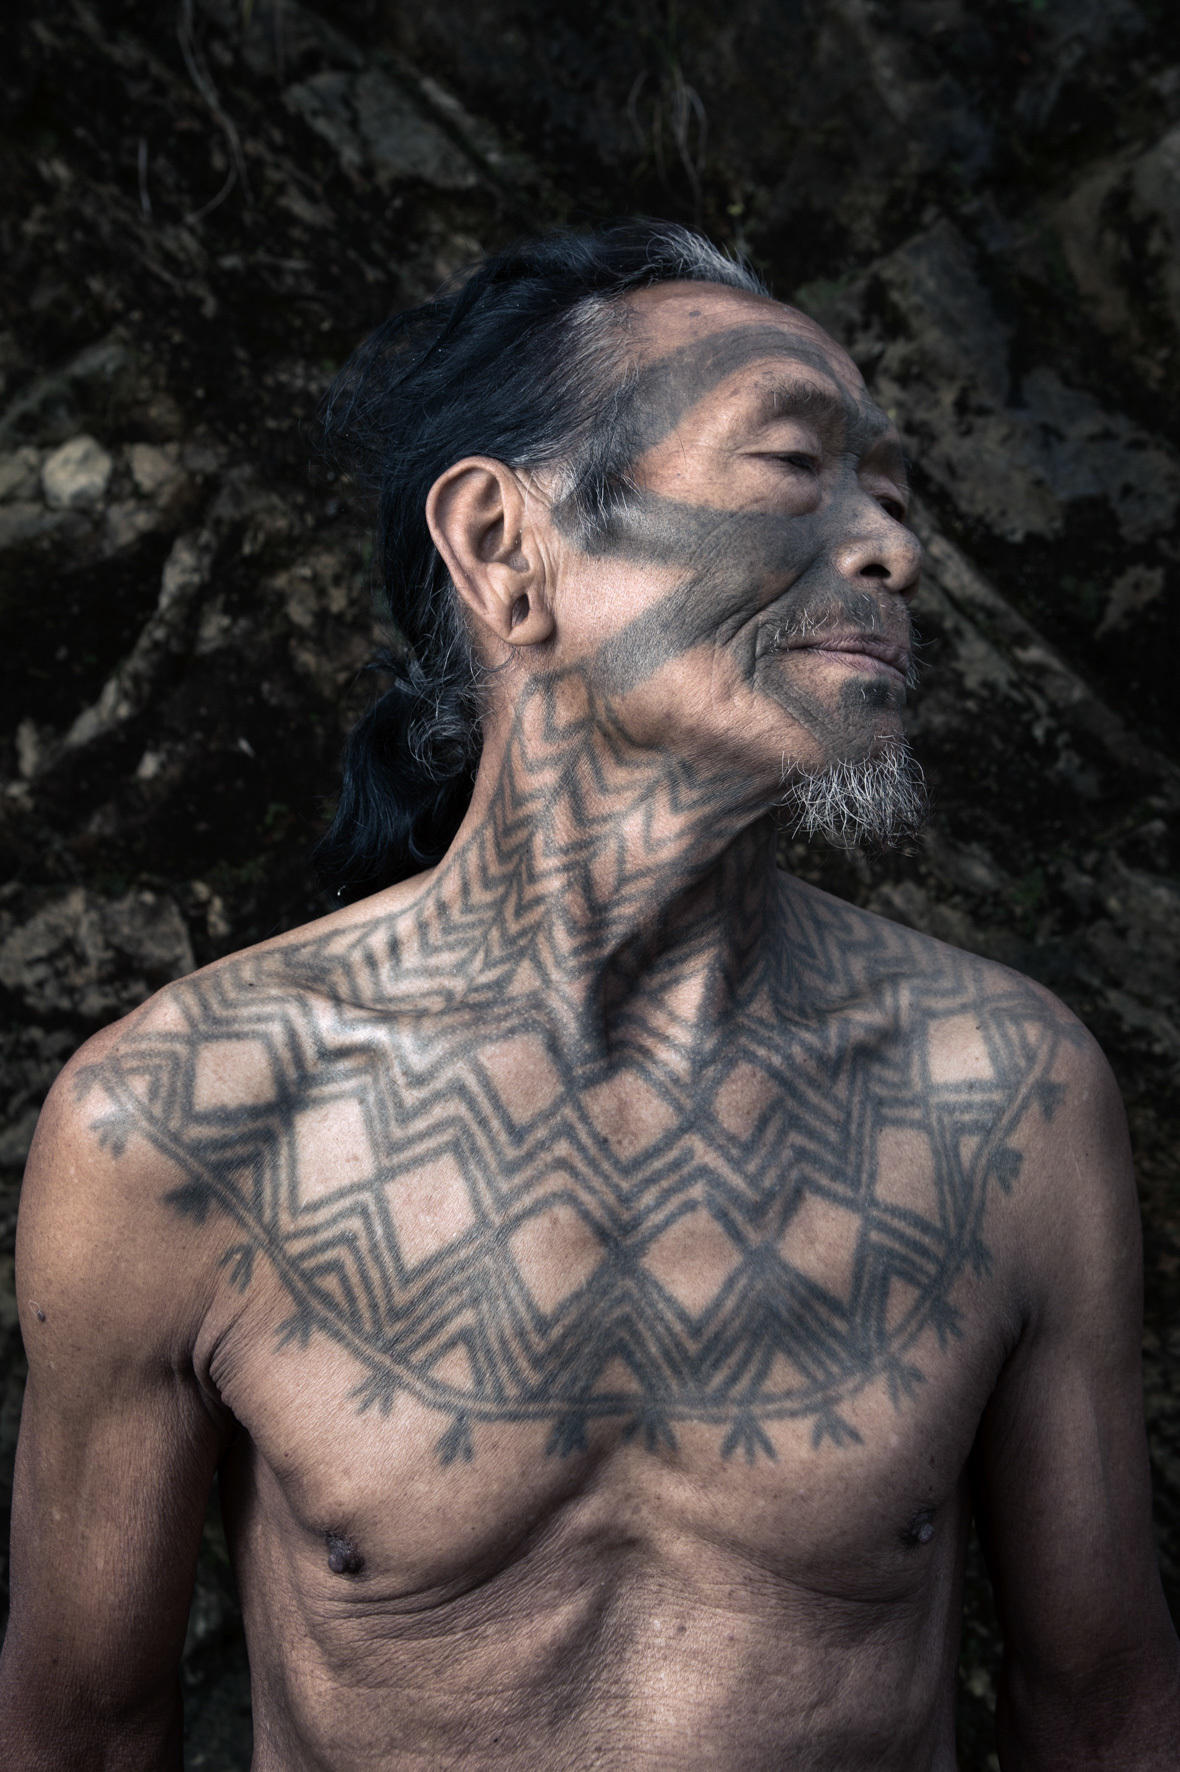 Photos The Vanishing Body Art Of A Tribe Of Onetime Headhunters Knkx